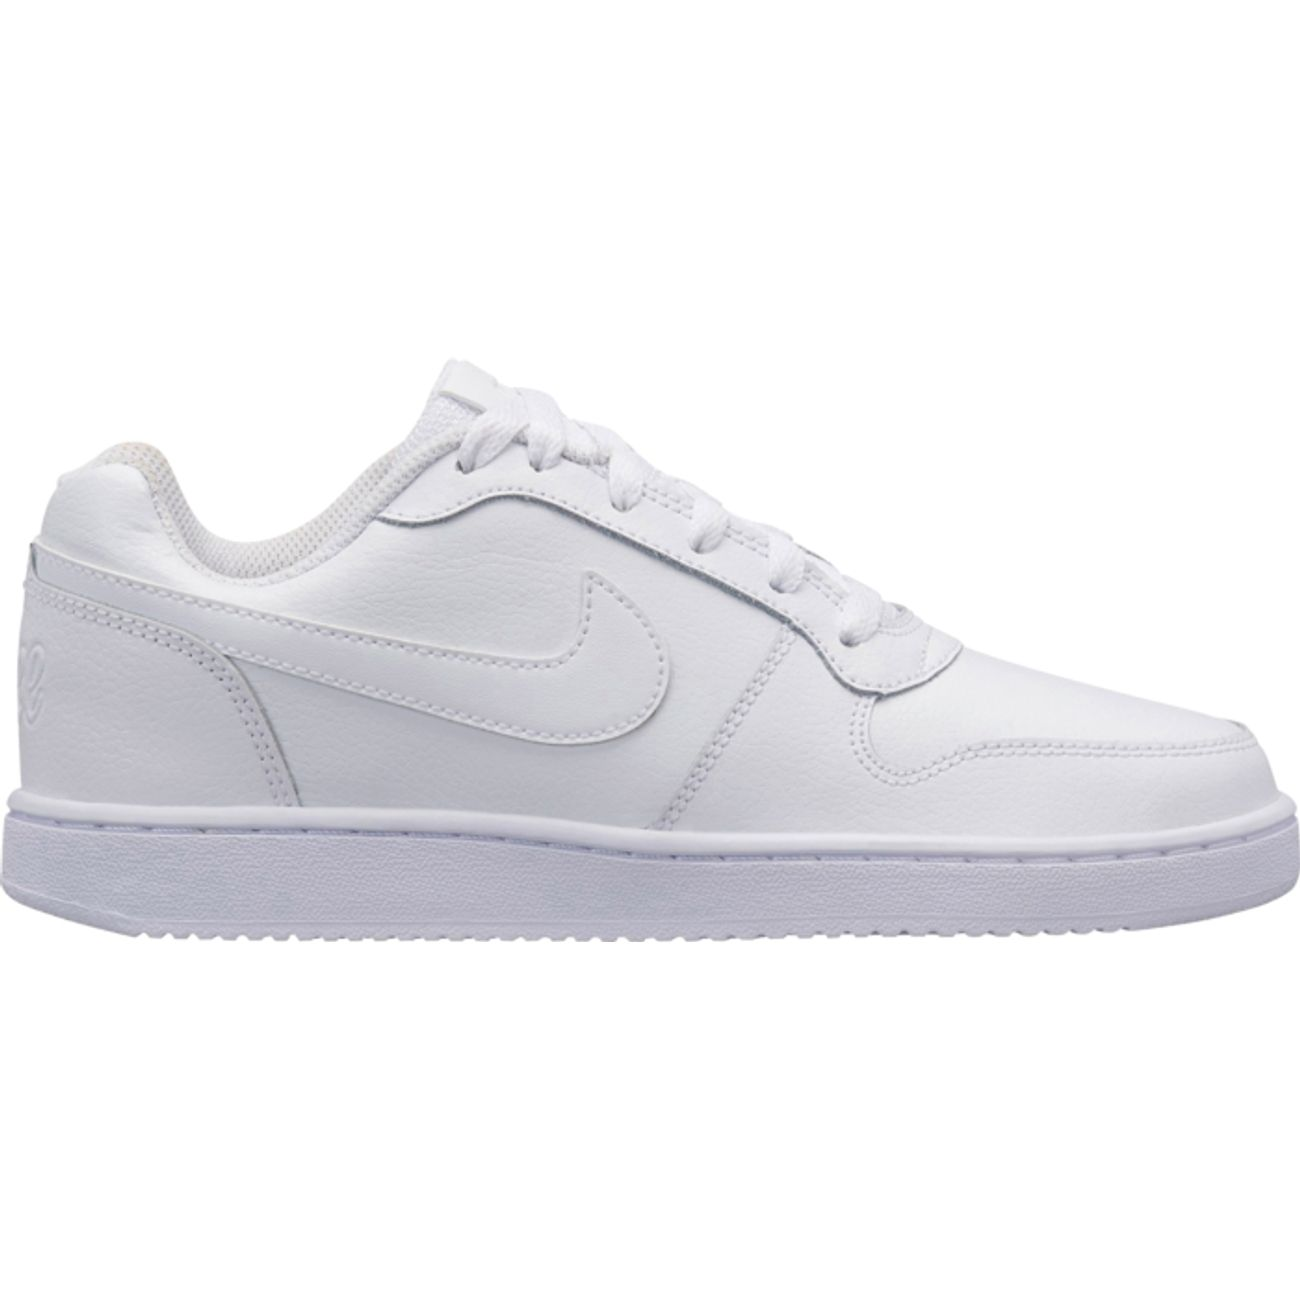 Nike Low Chaussures Femme Basketball Basses Ebernon Ok0XNw8nP